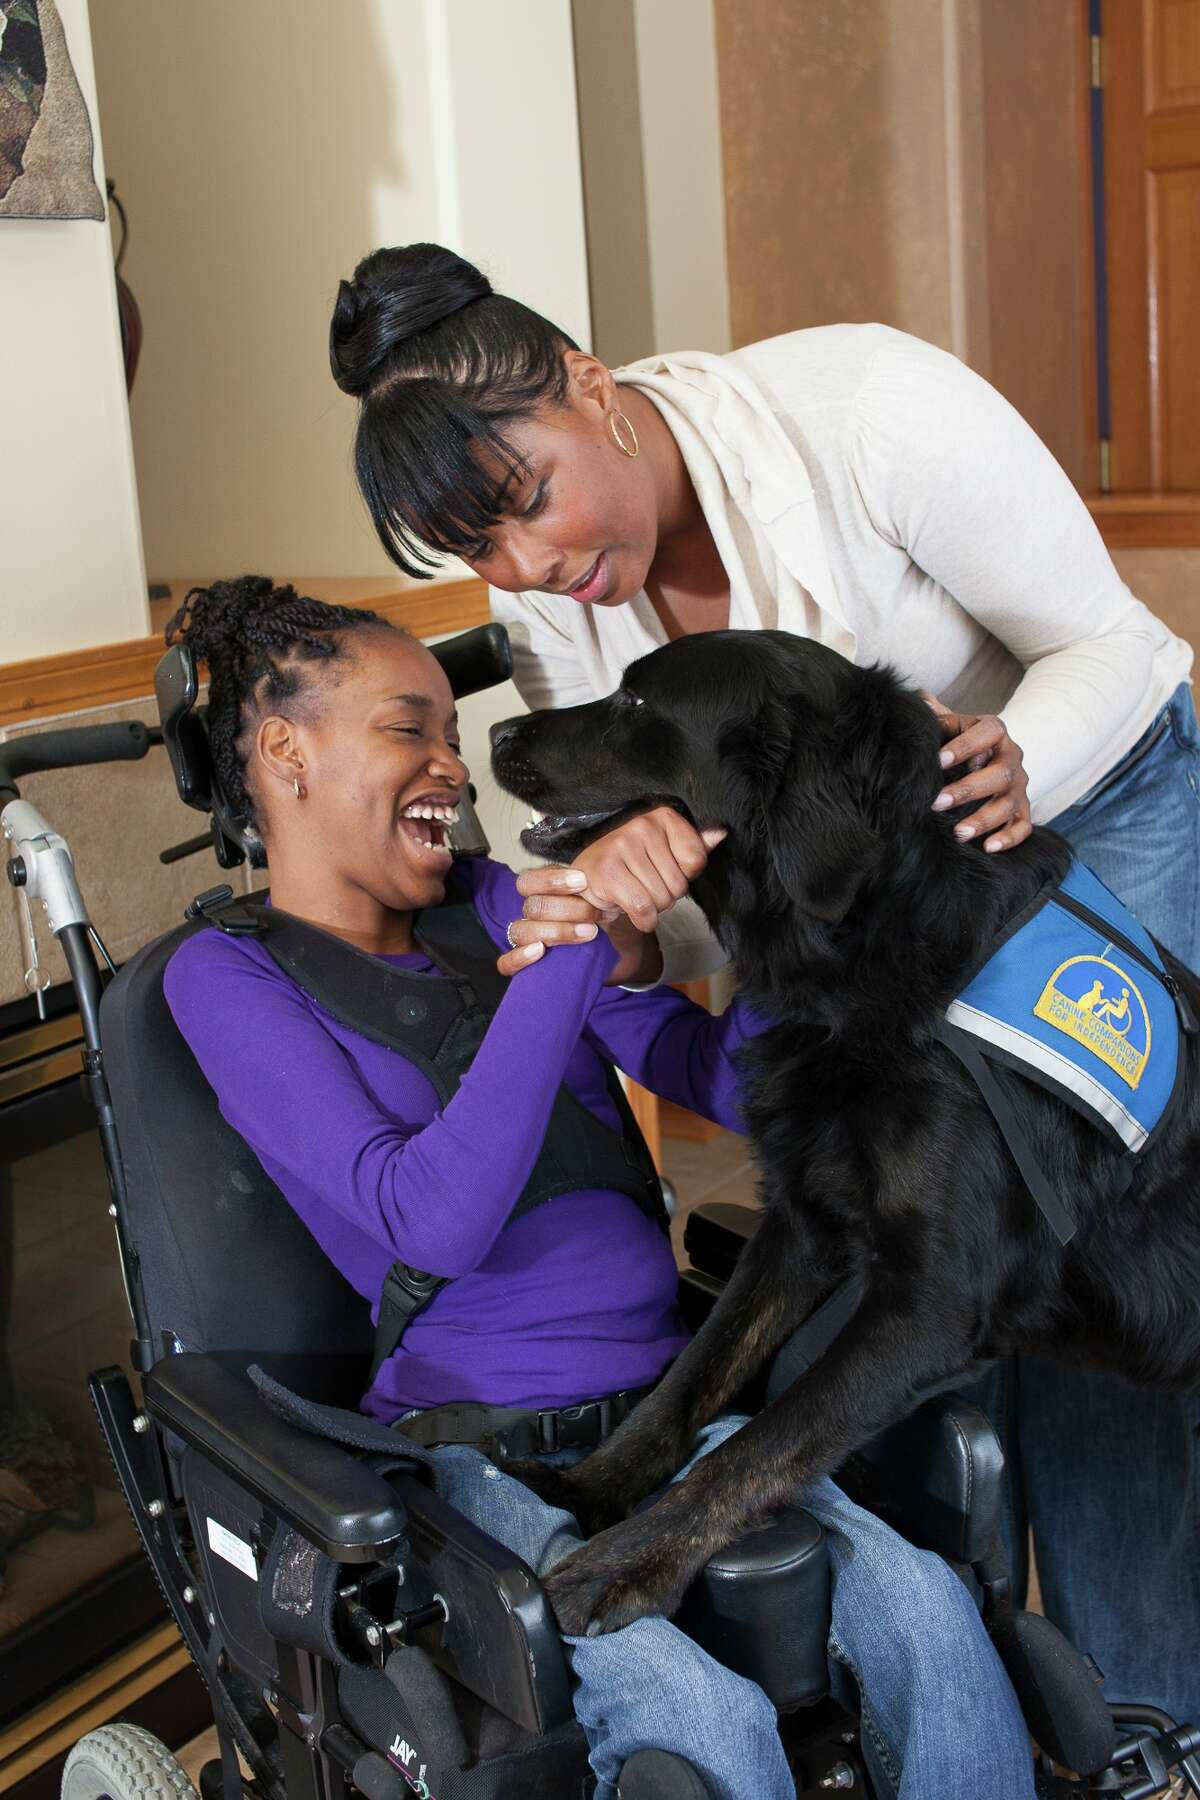 Canine Companions assistance dog Marco provides physical therapy to Barbara by getting her arms moving.